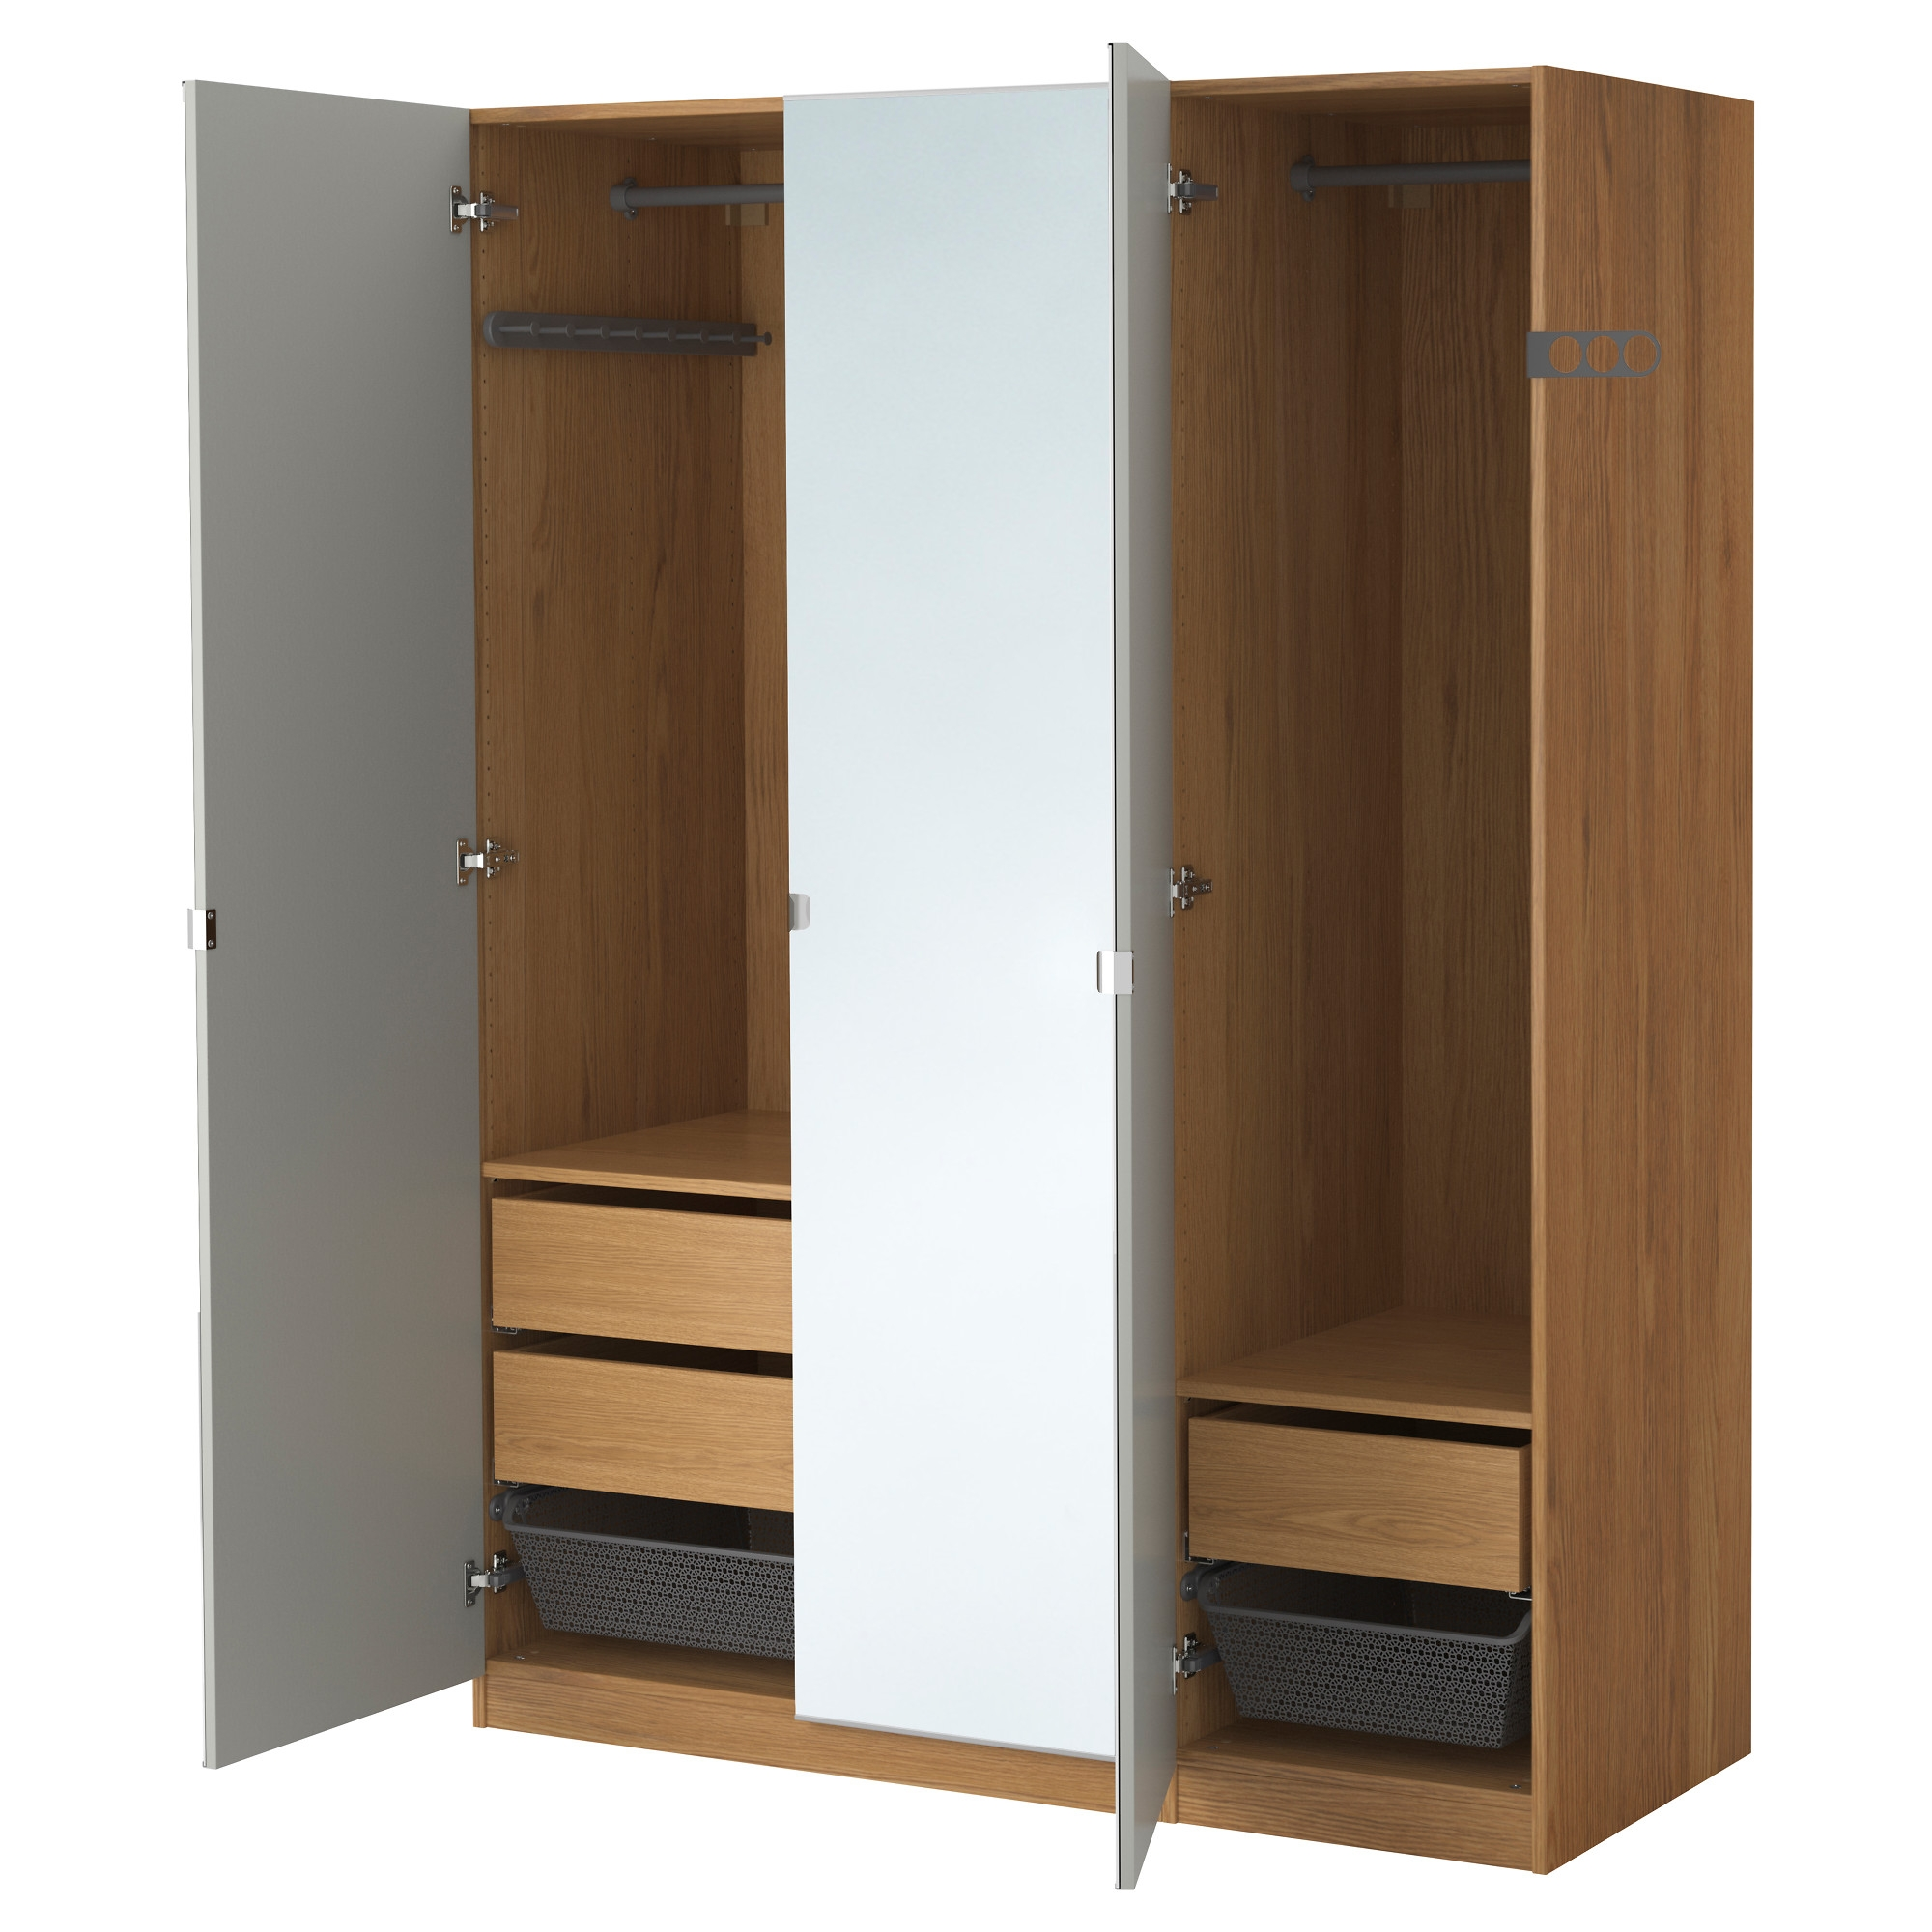 Bedroom Closets And Wardrobes: Corner Wardrobe Closet IKEA